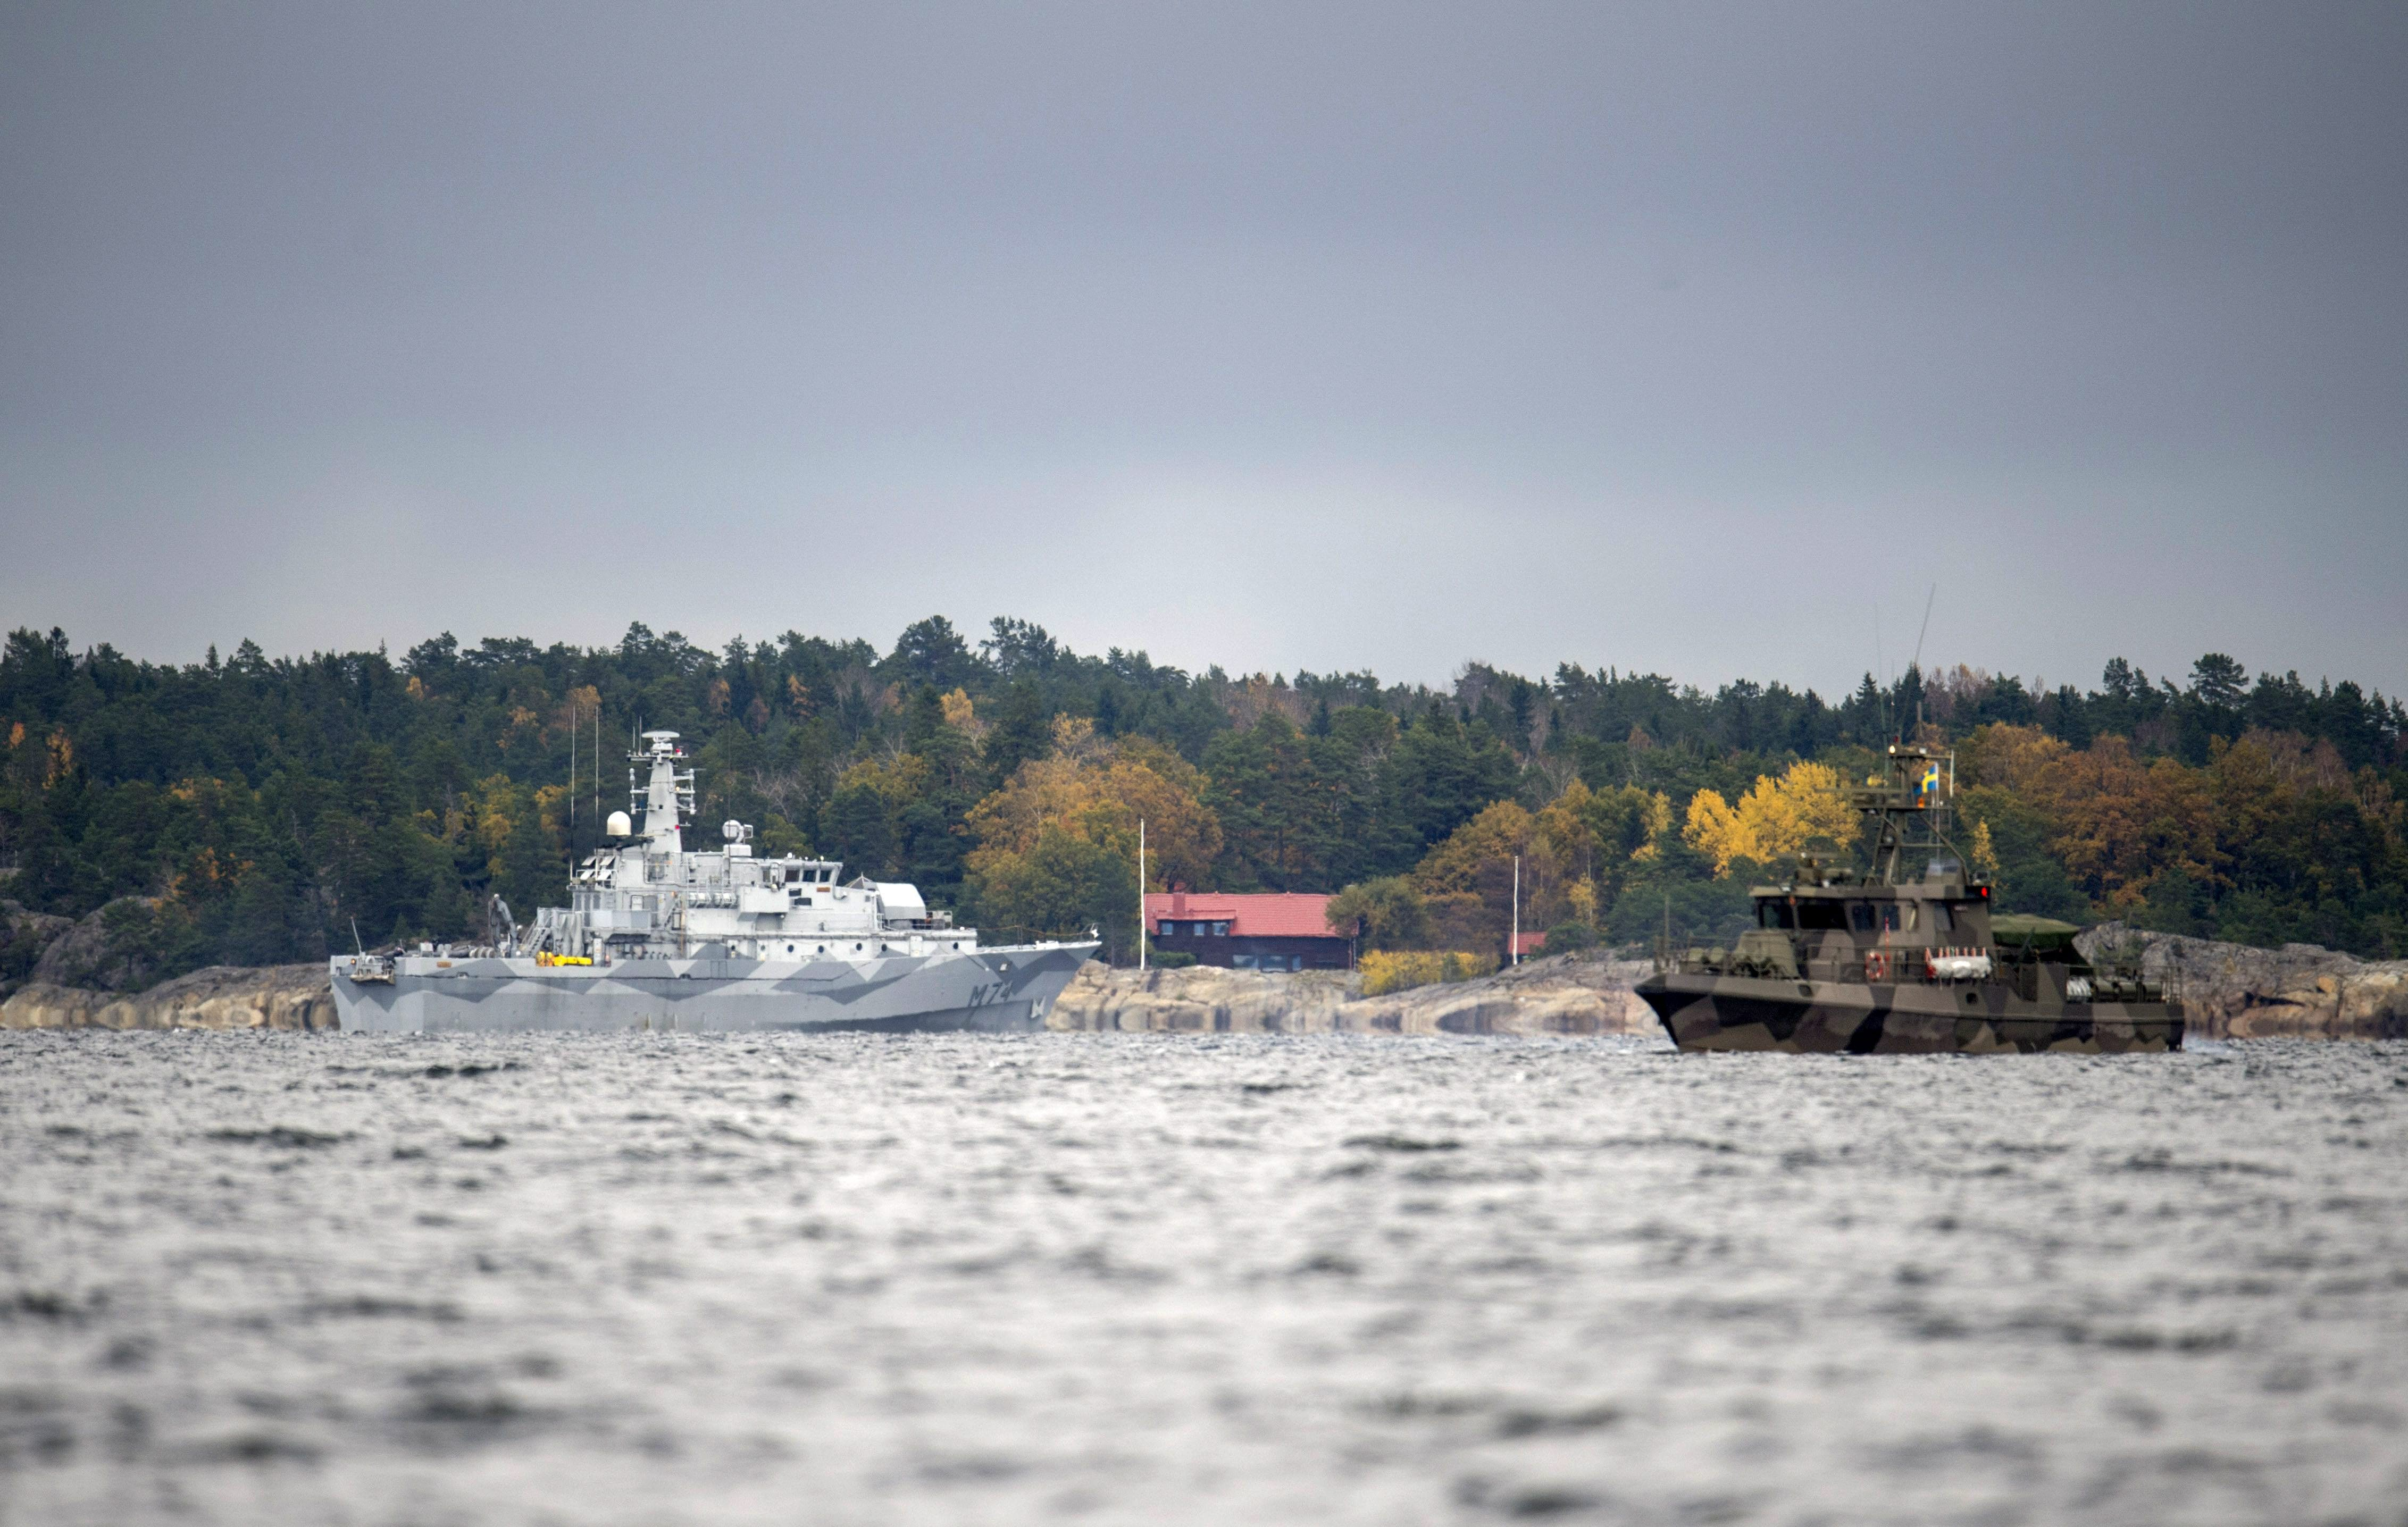 The Swedish minesweeper HMS Kullen and a guard boat in Namdo Bay on their fifth day of searching for a suspected foreign vessel in the Stockholm archipelago on October 21, 2014.